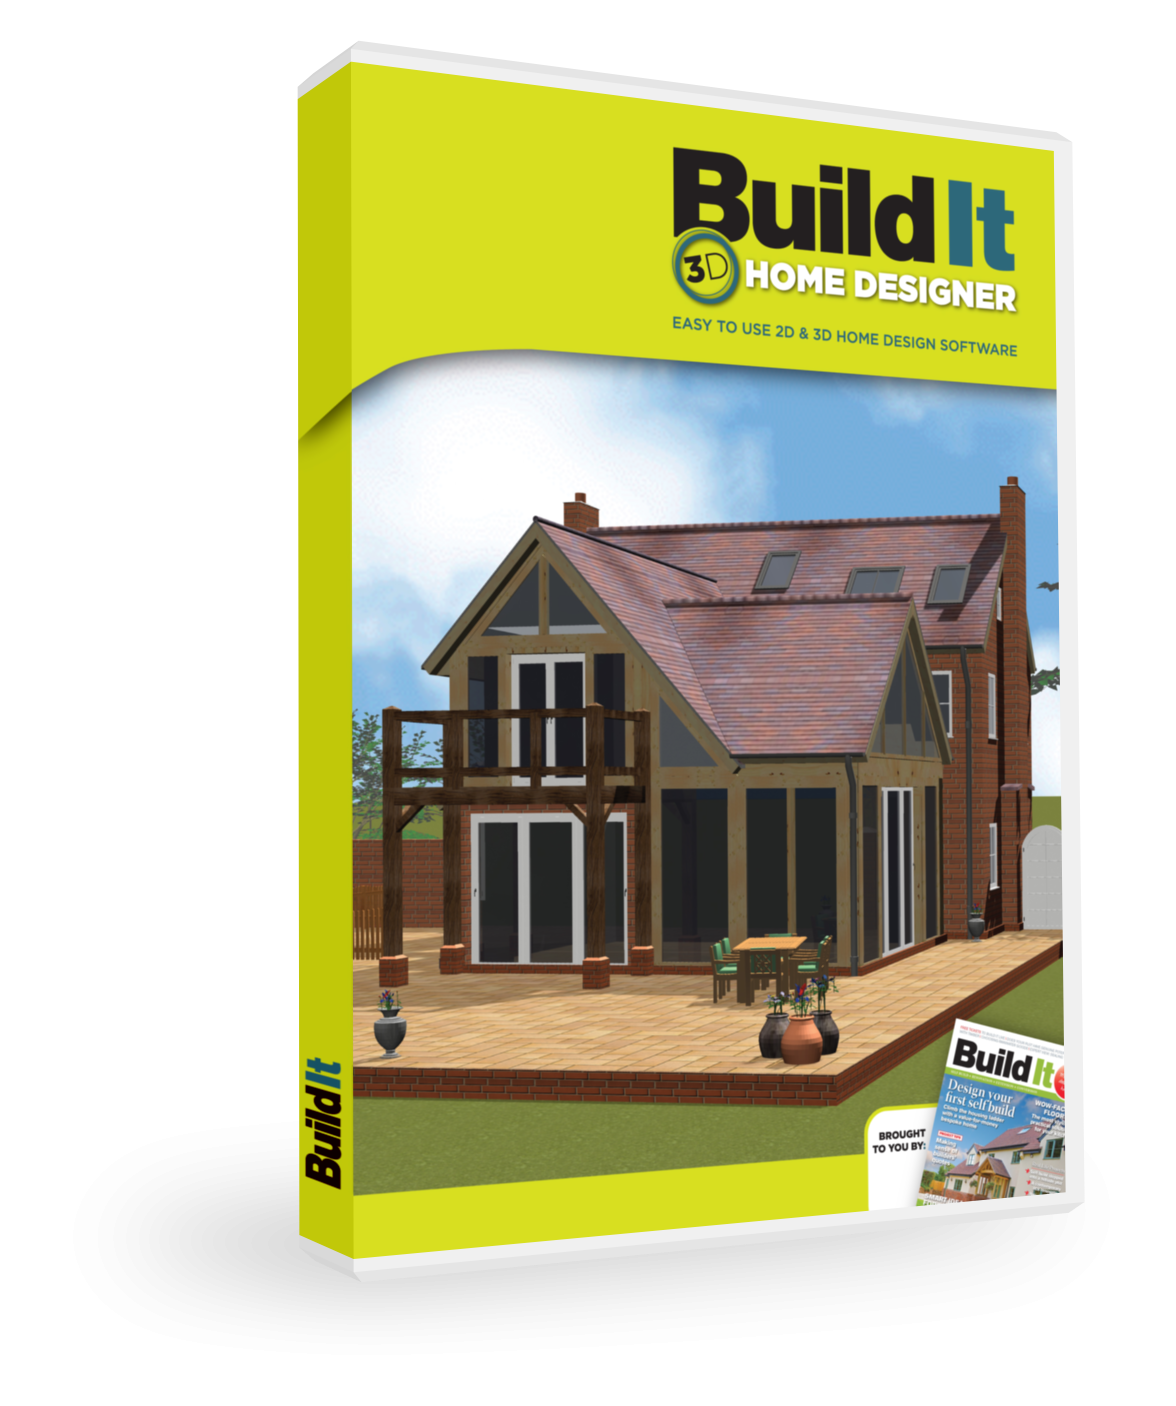 Home Design 3d Expert: Build It 3D Home Design Software